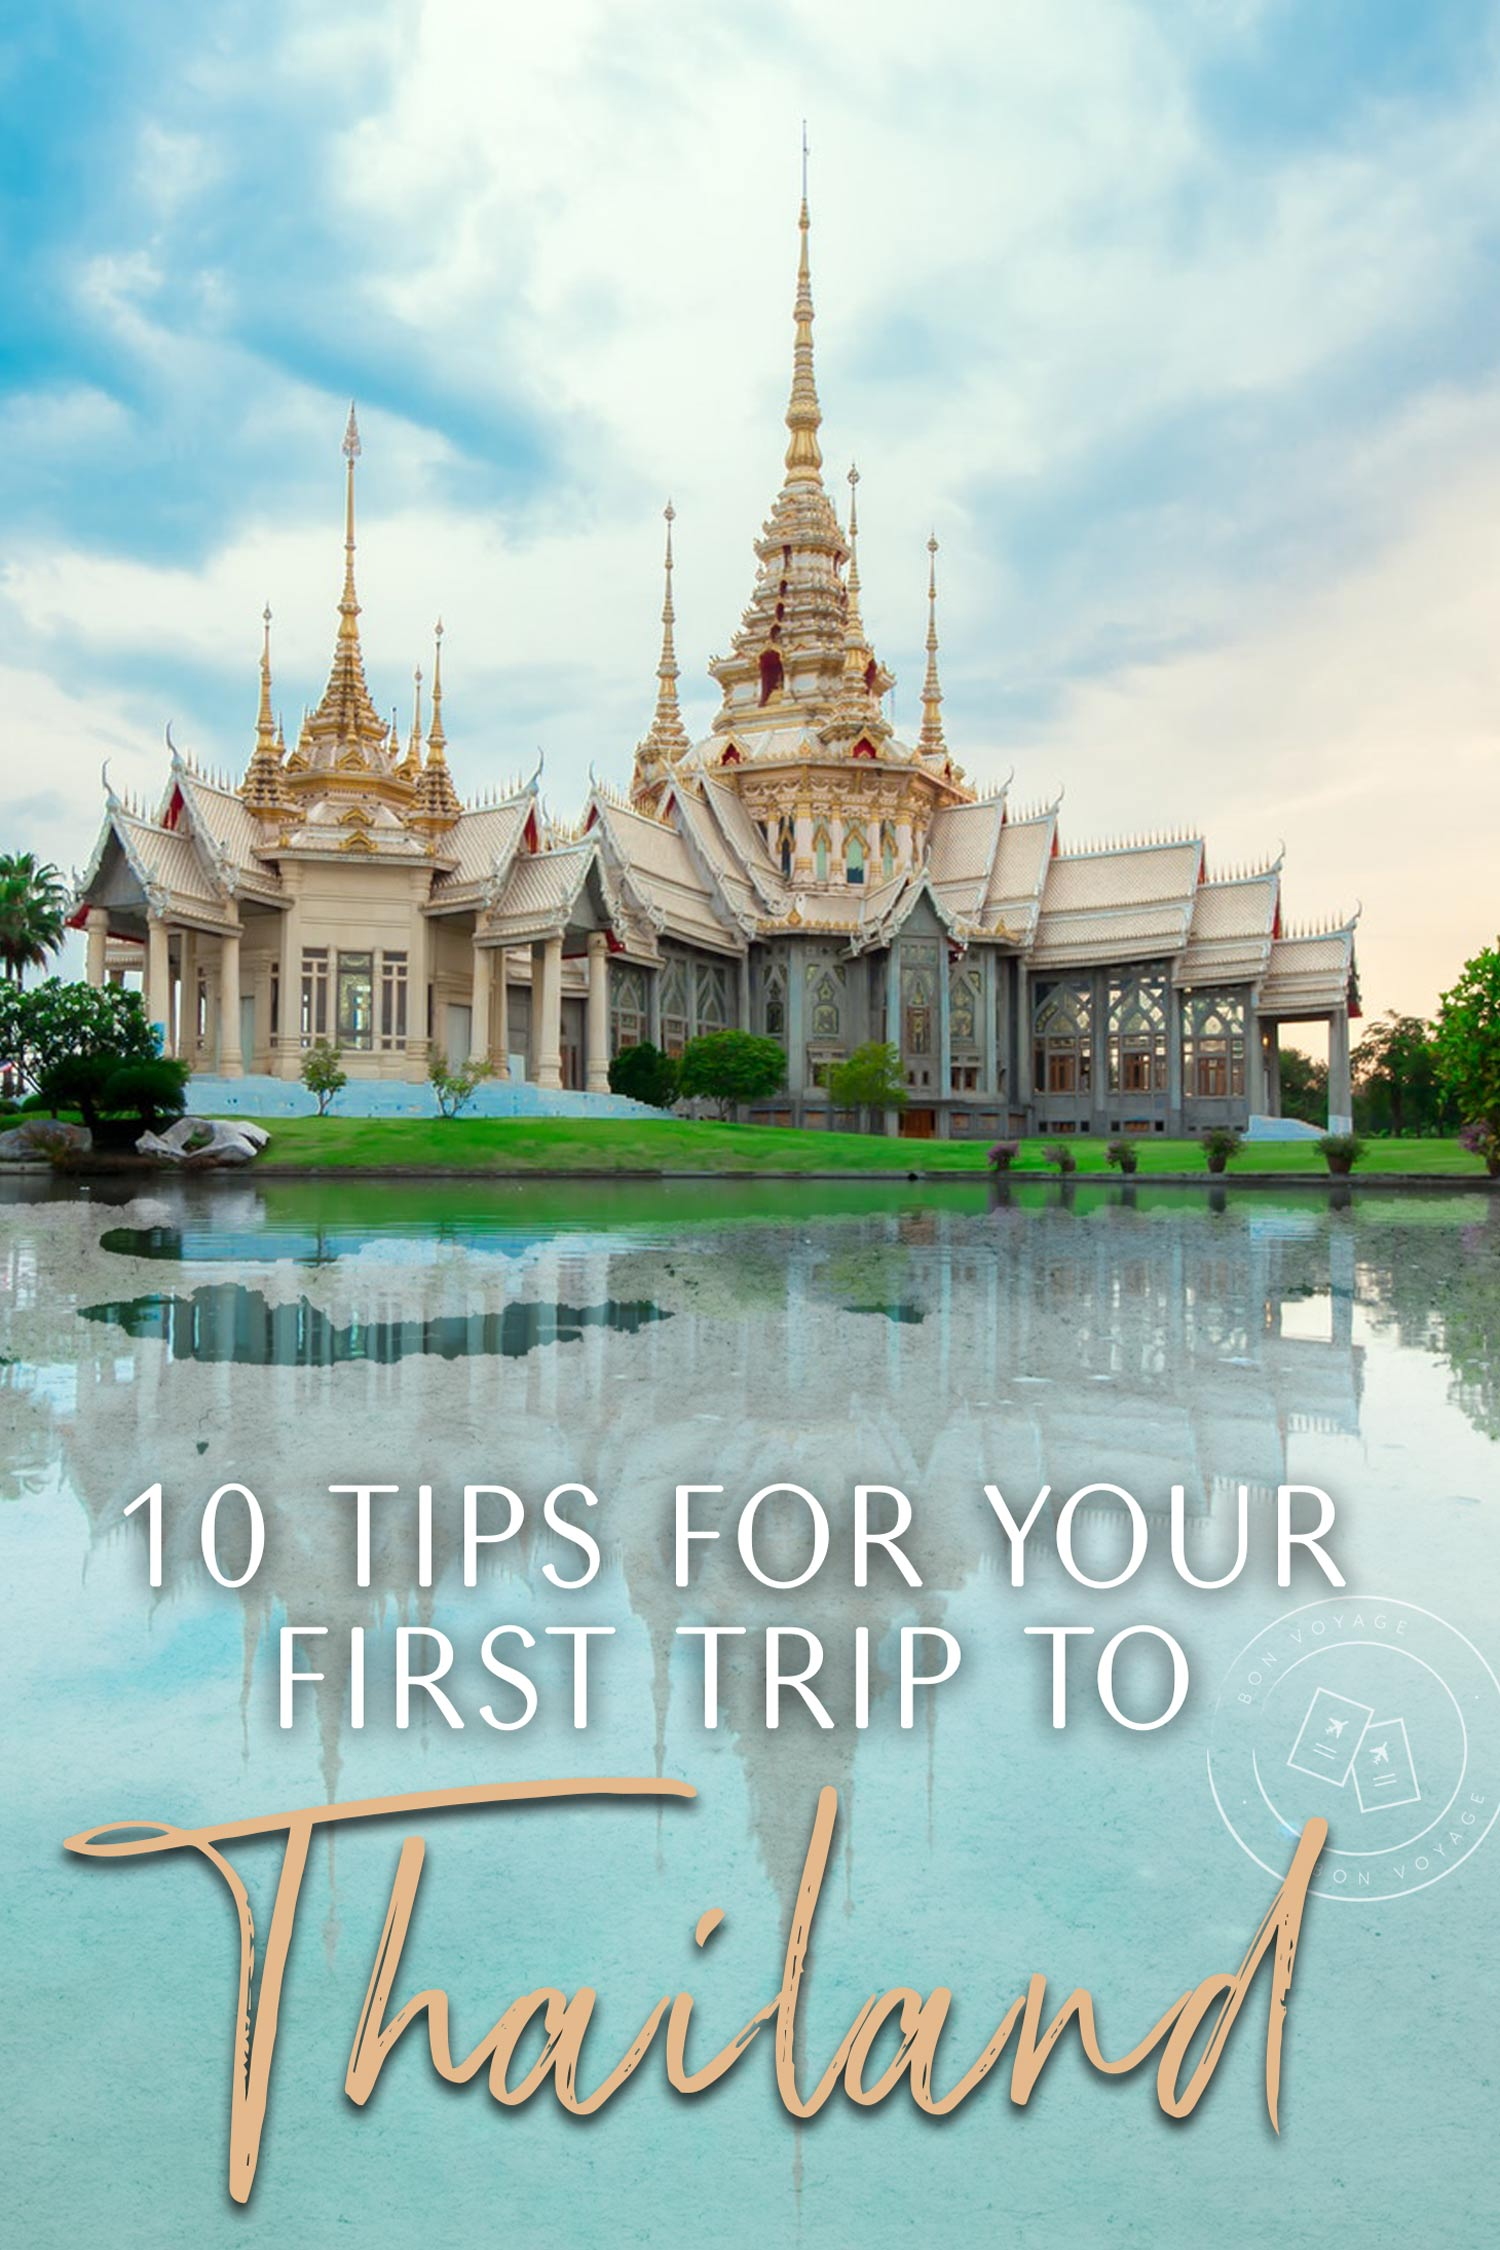 10 tips for your first trip to Thailand